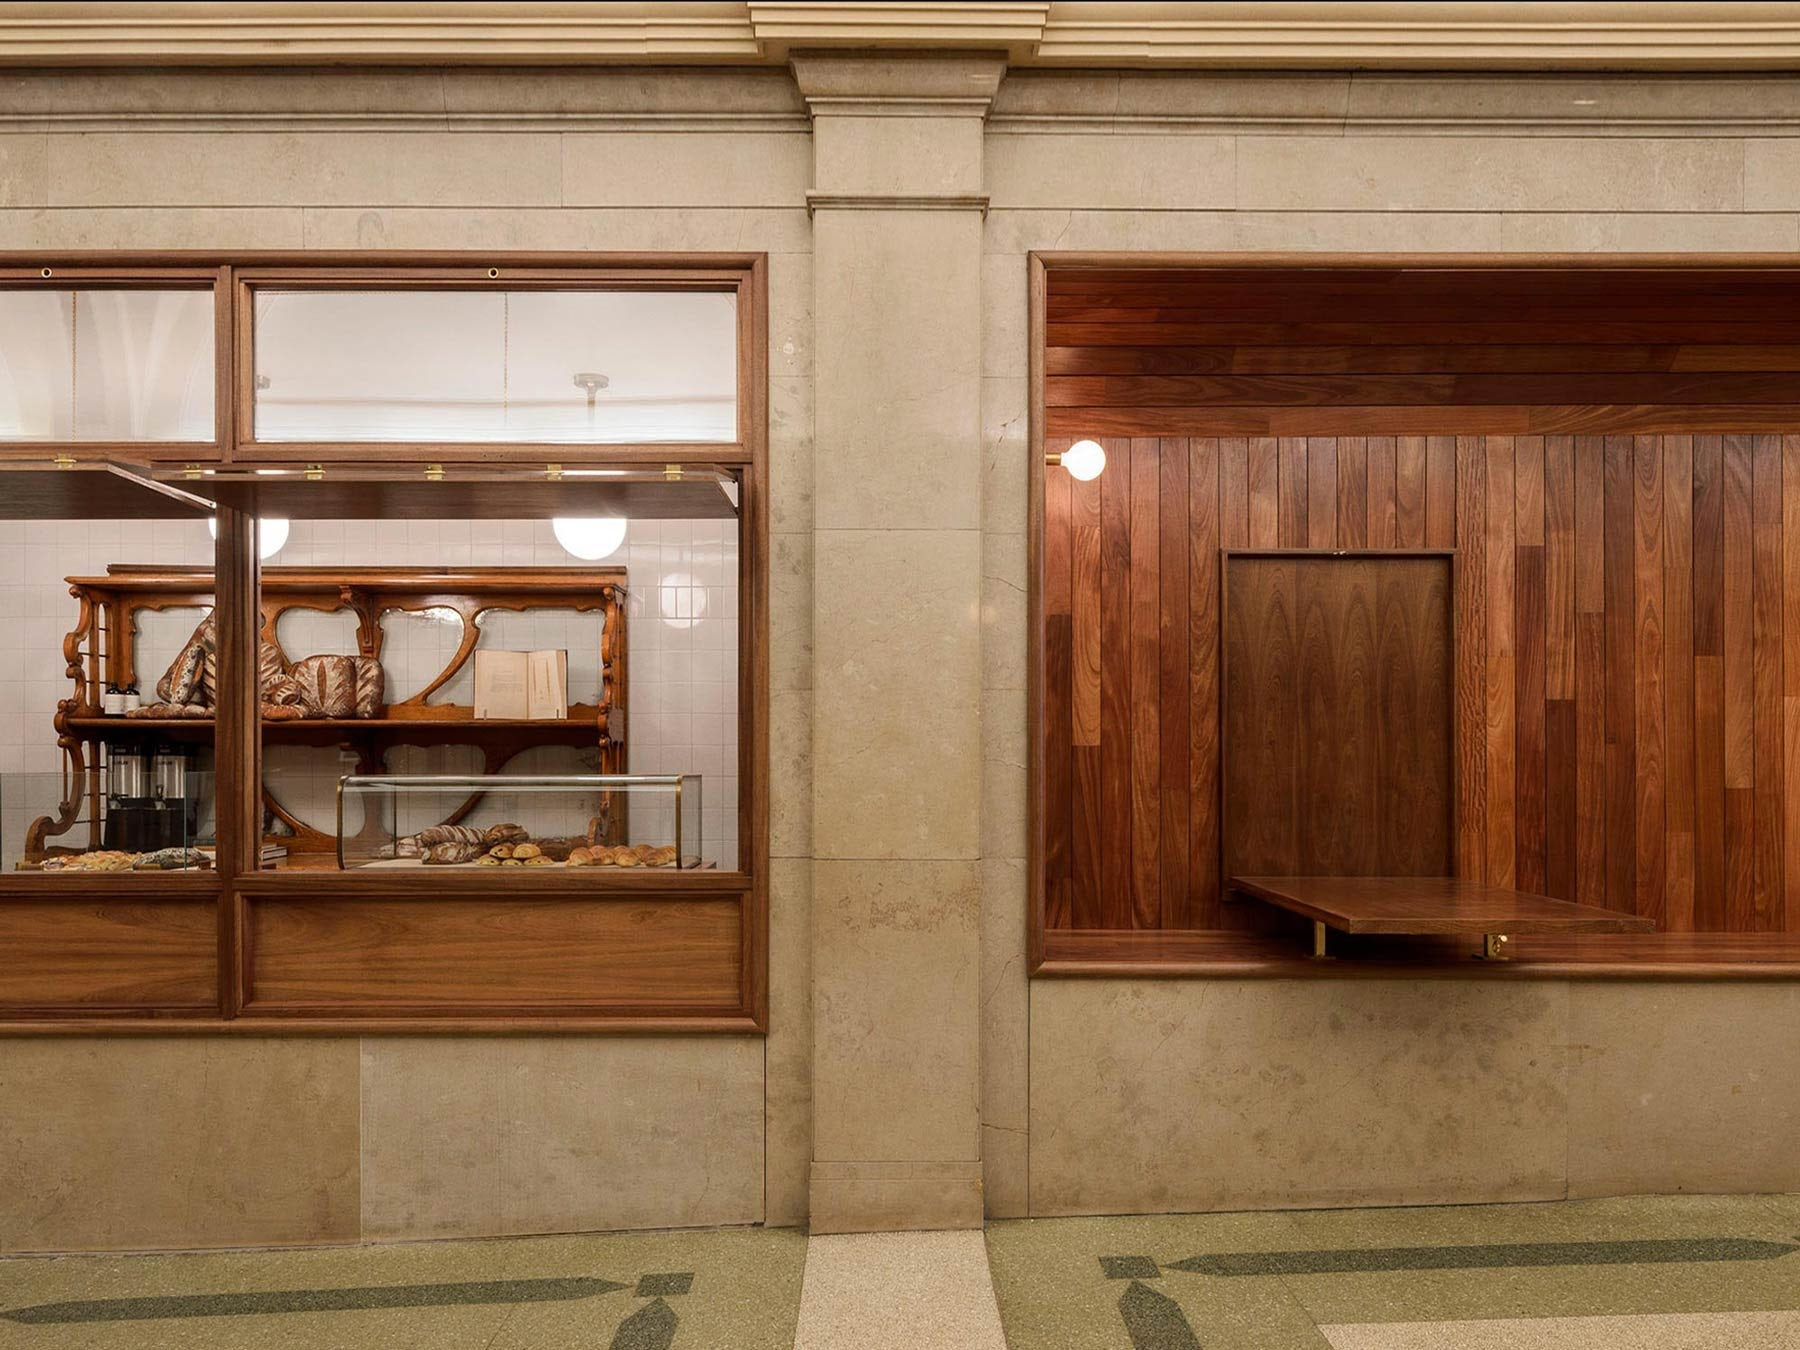 gallery image for Frenchette Bakery